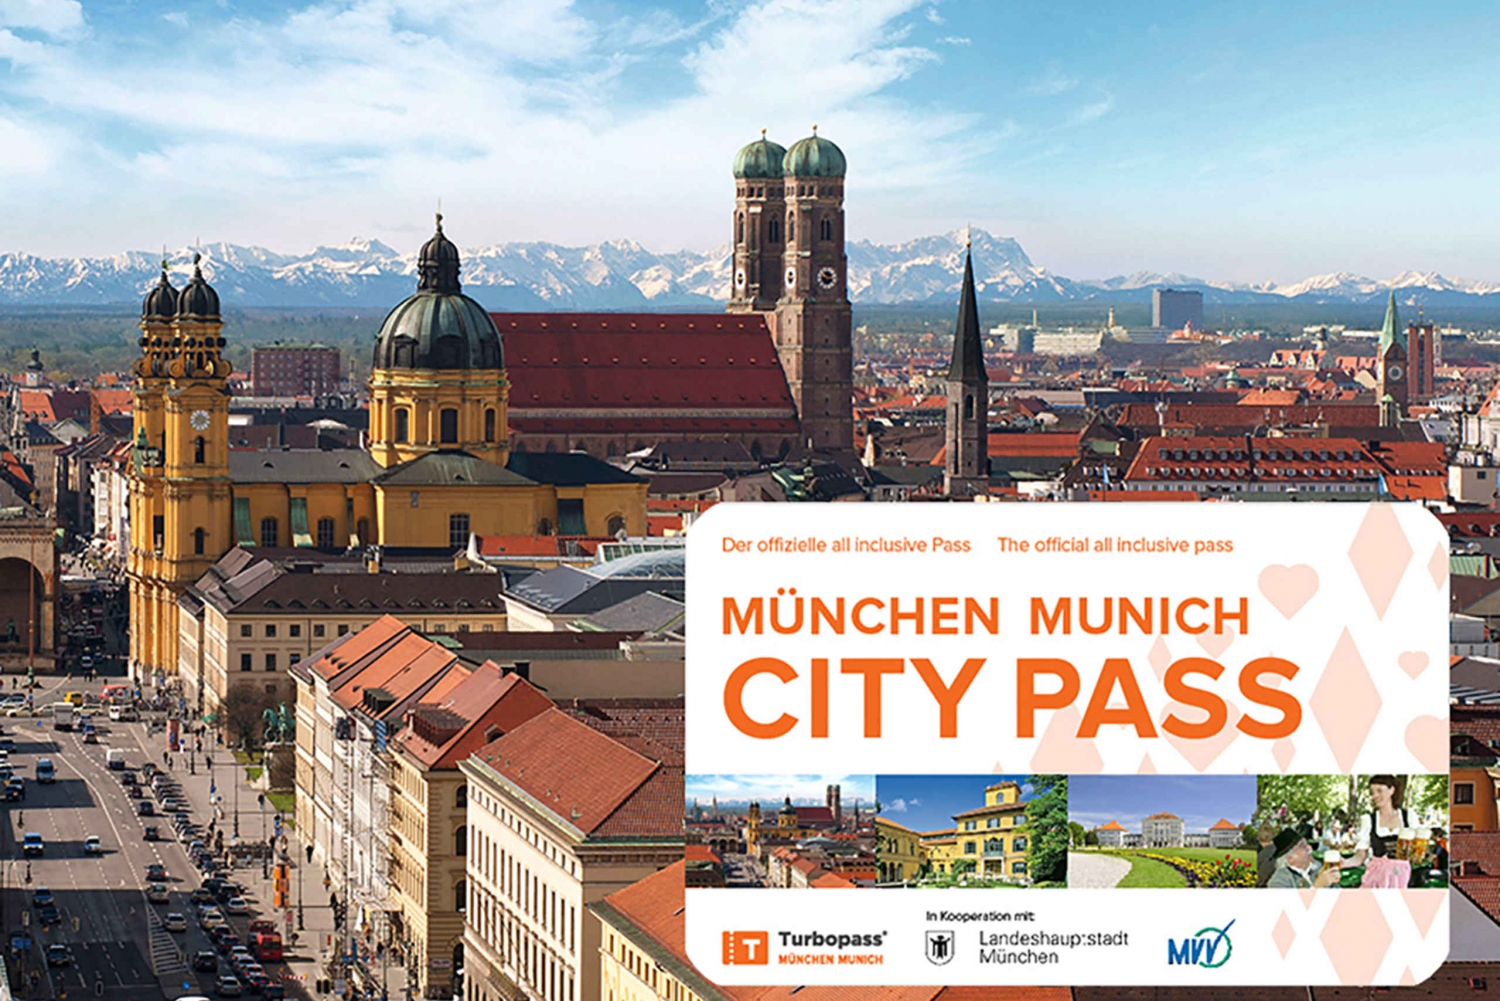 Munich City Pass: Free Admission and Public Transportation